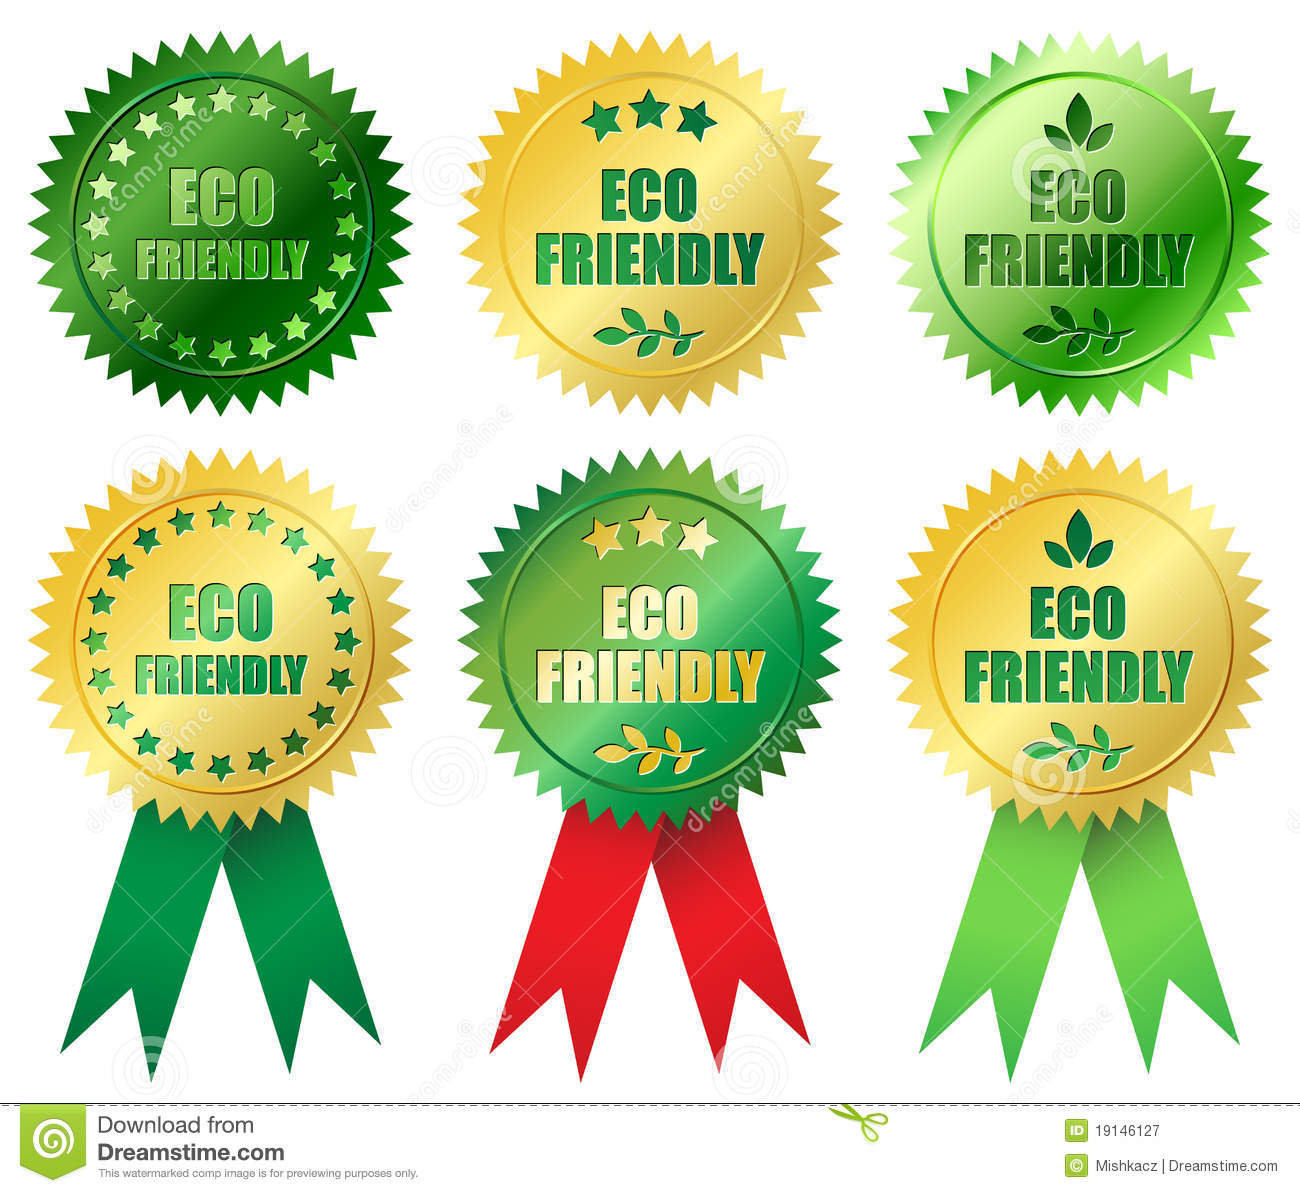 Eco Friendly Royalty Free Stock Photography